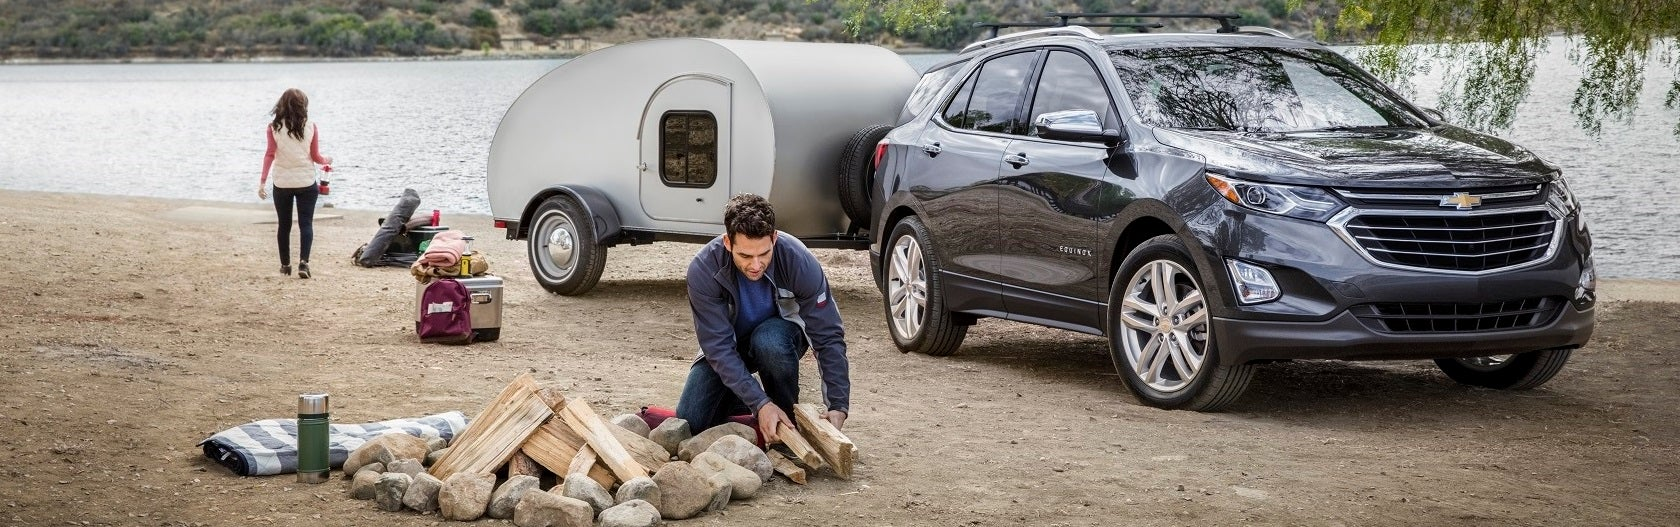 Chevy Equinox Towing Capacity >> Chevy Equinox Towing Capacity Feldman Chevrolet Of Lansing Mi